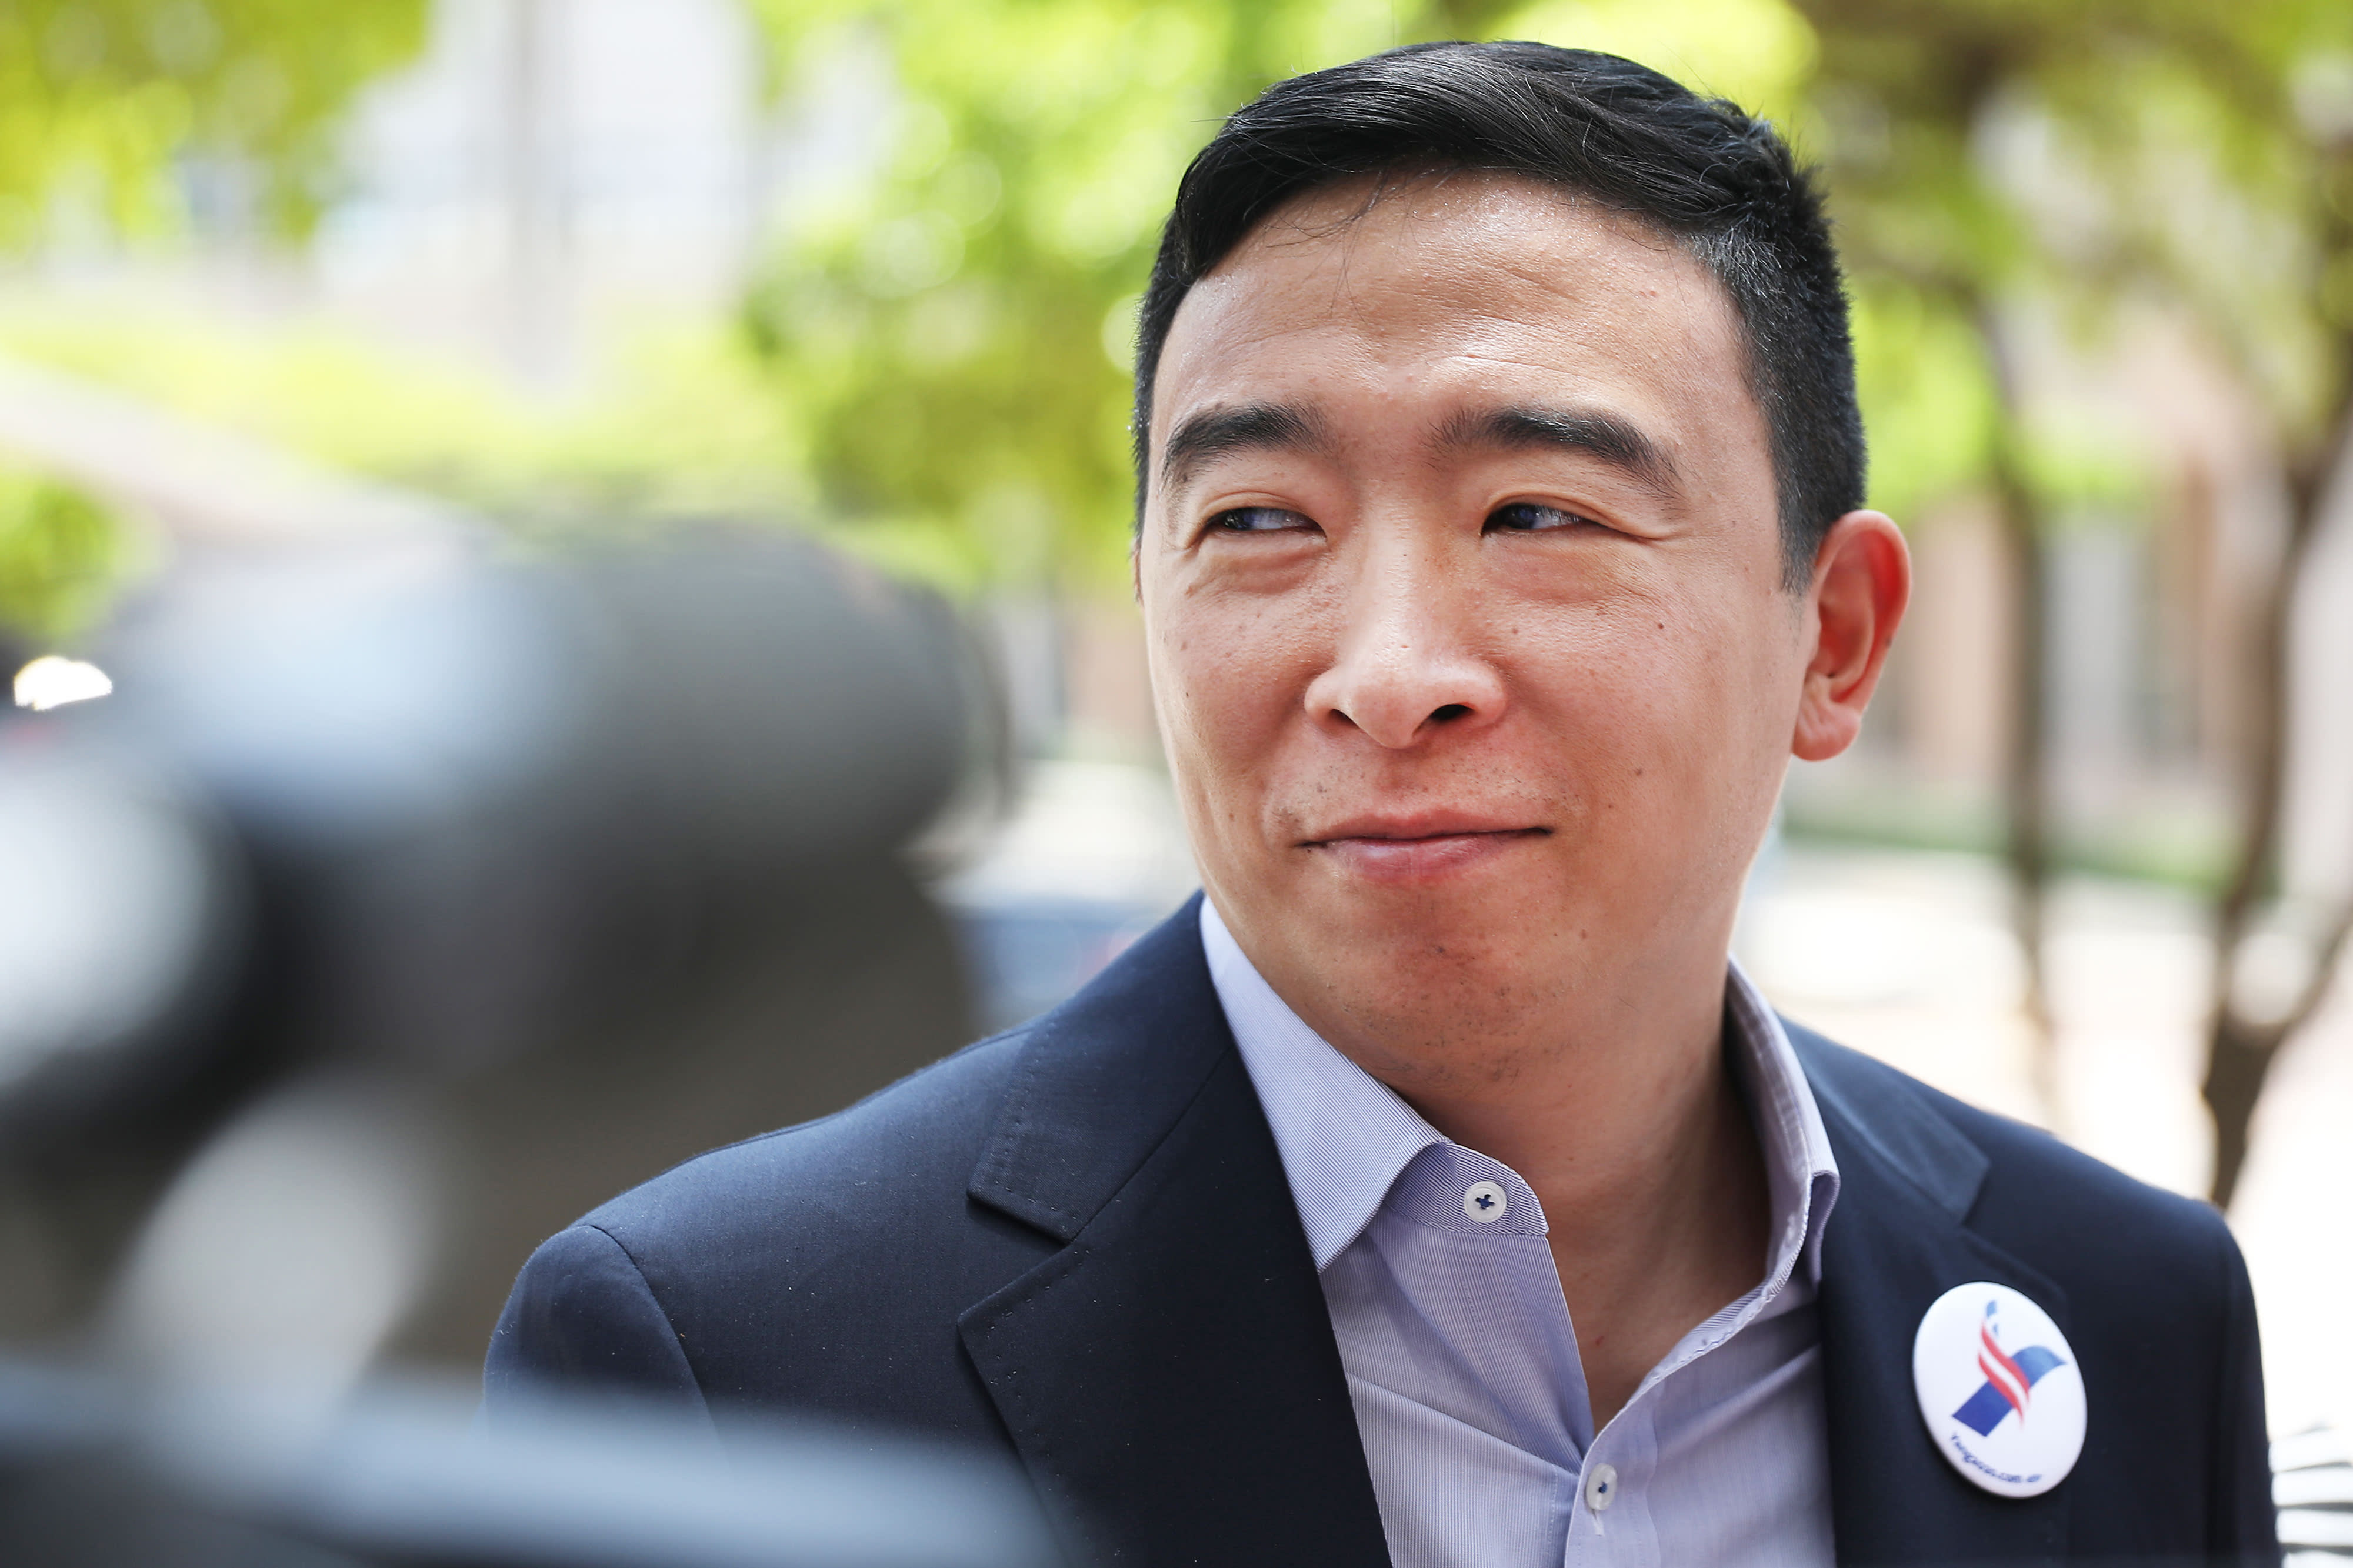 Andrew Yang says Democrats should focus on 'putting cash into people's hands'